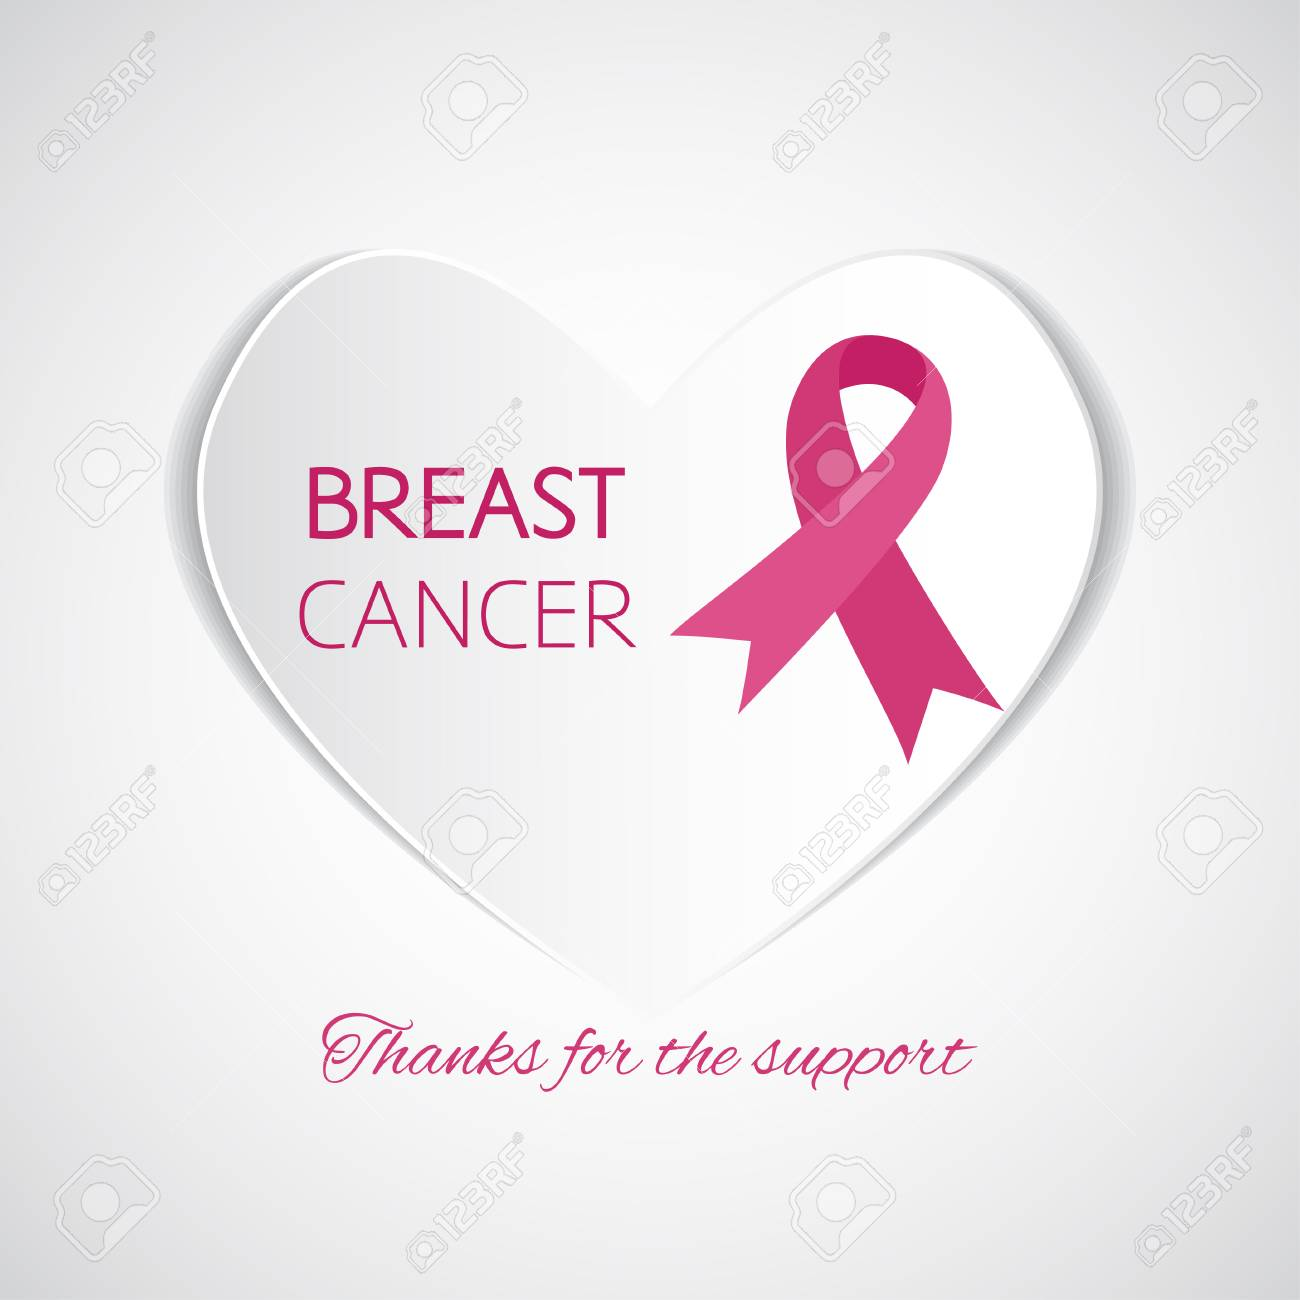 Symbol Of Breast Cancer Support Royalty Free Cliparts Vectors And